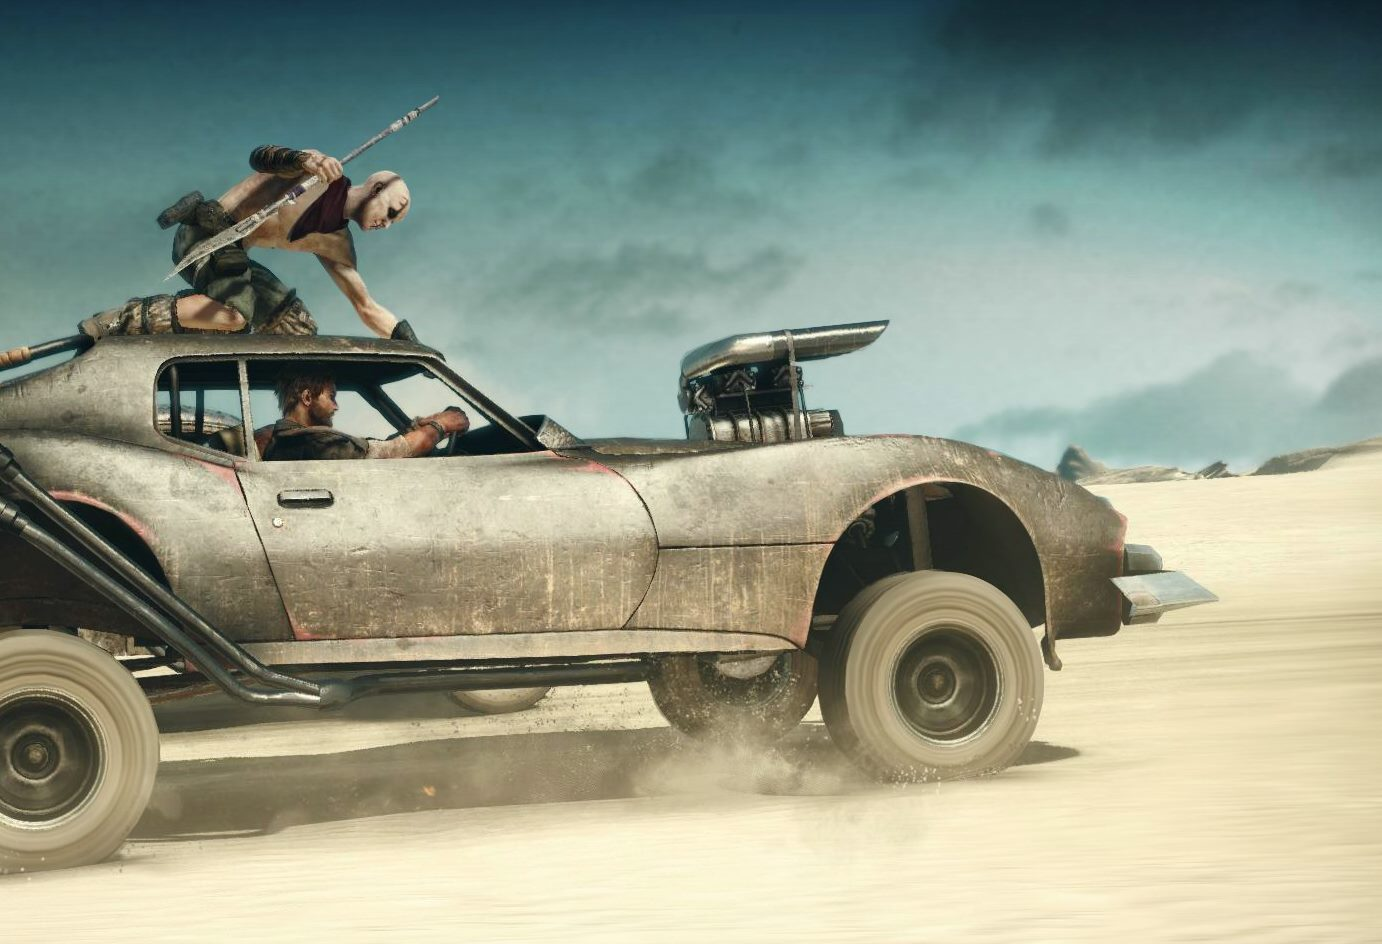 Mad max release date game in Australia